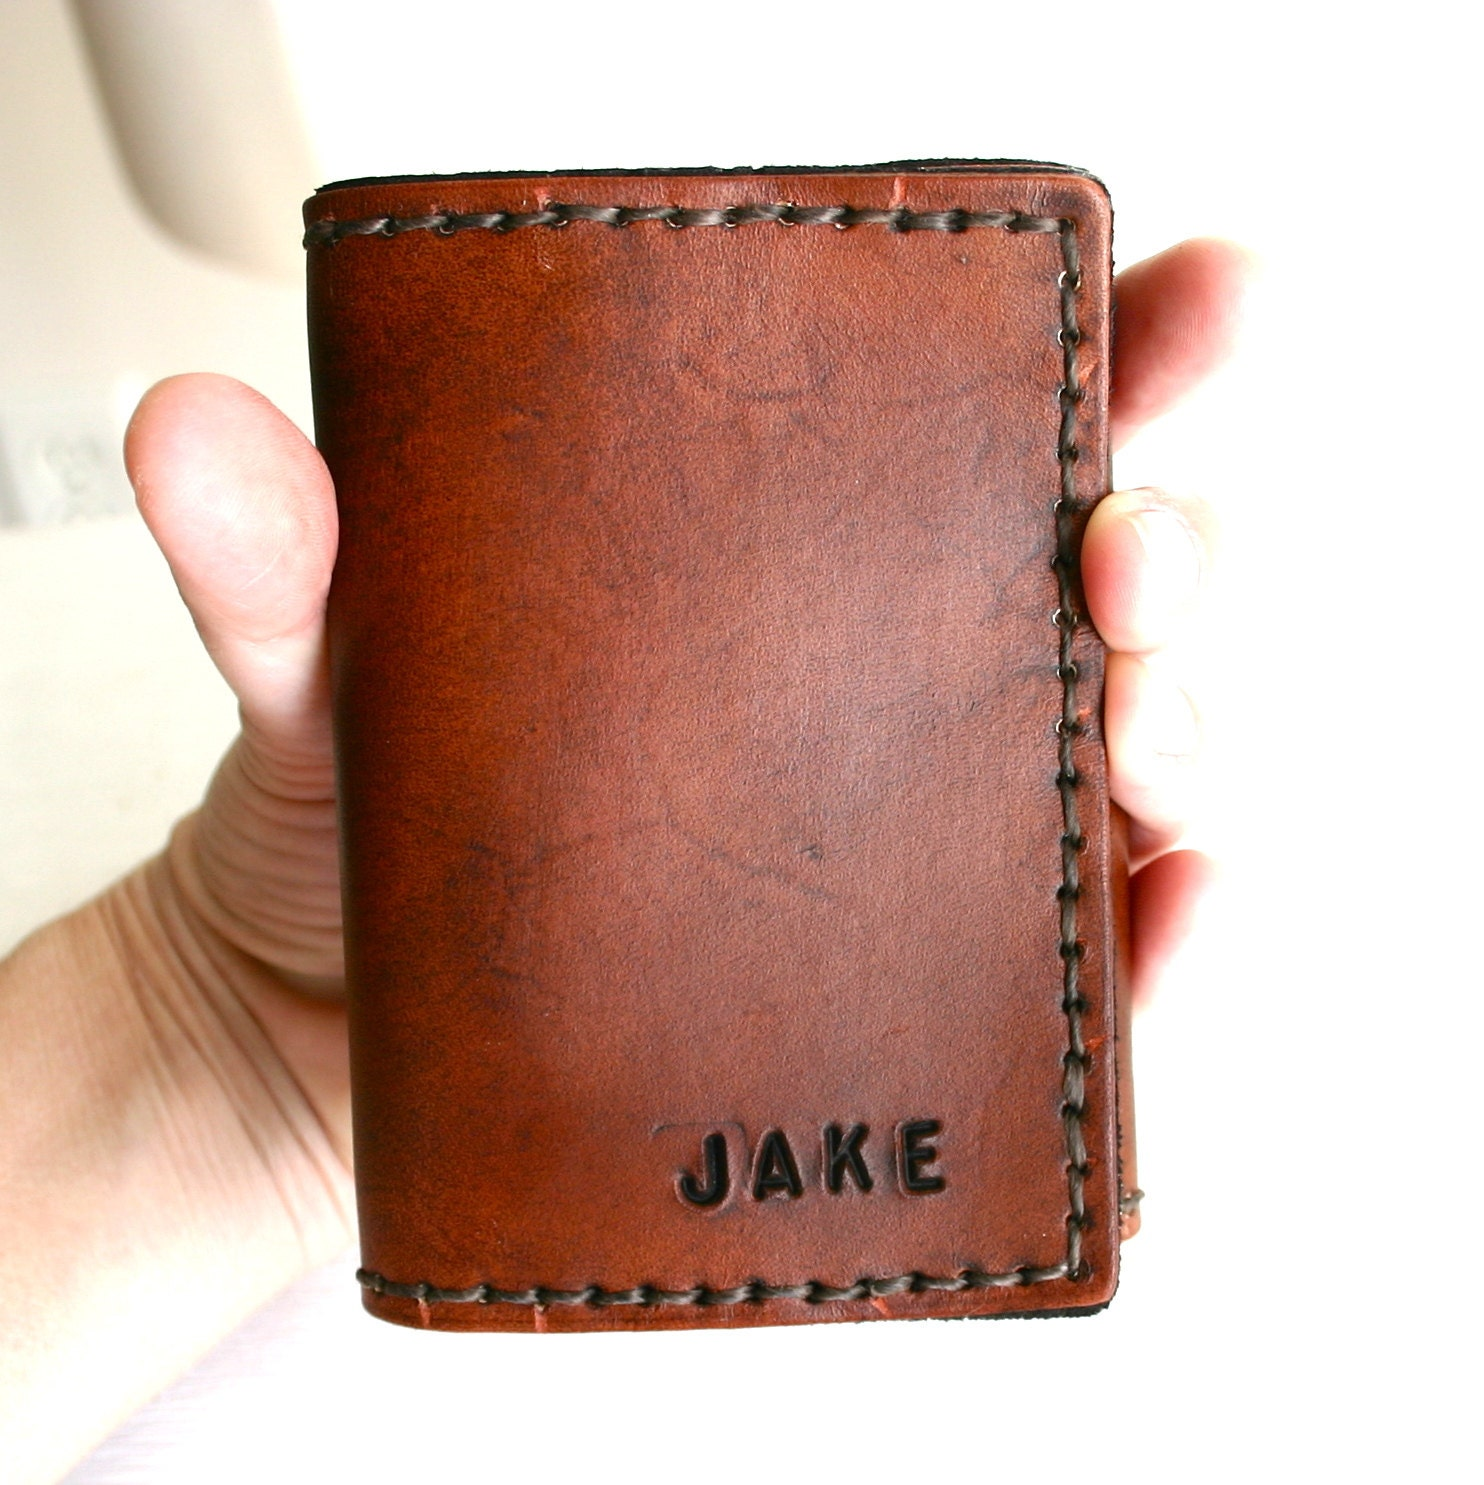 TriFold Mens Wallet, Mens Leather Wallet, Personalized Mens wallet 3rd anniversary gift for Husband or Boyfriend, Groomsmen gift wedding